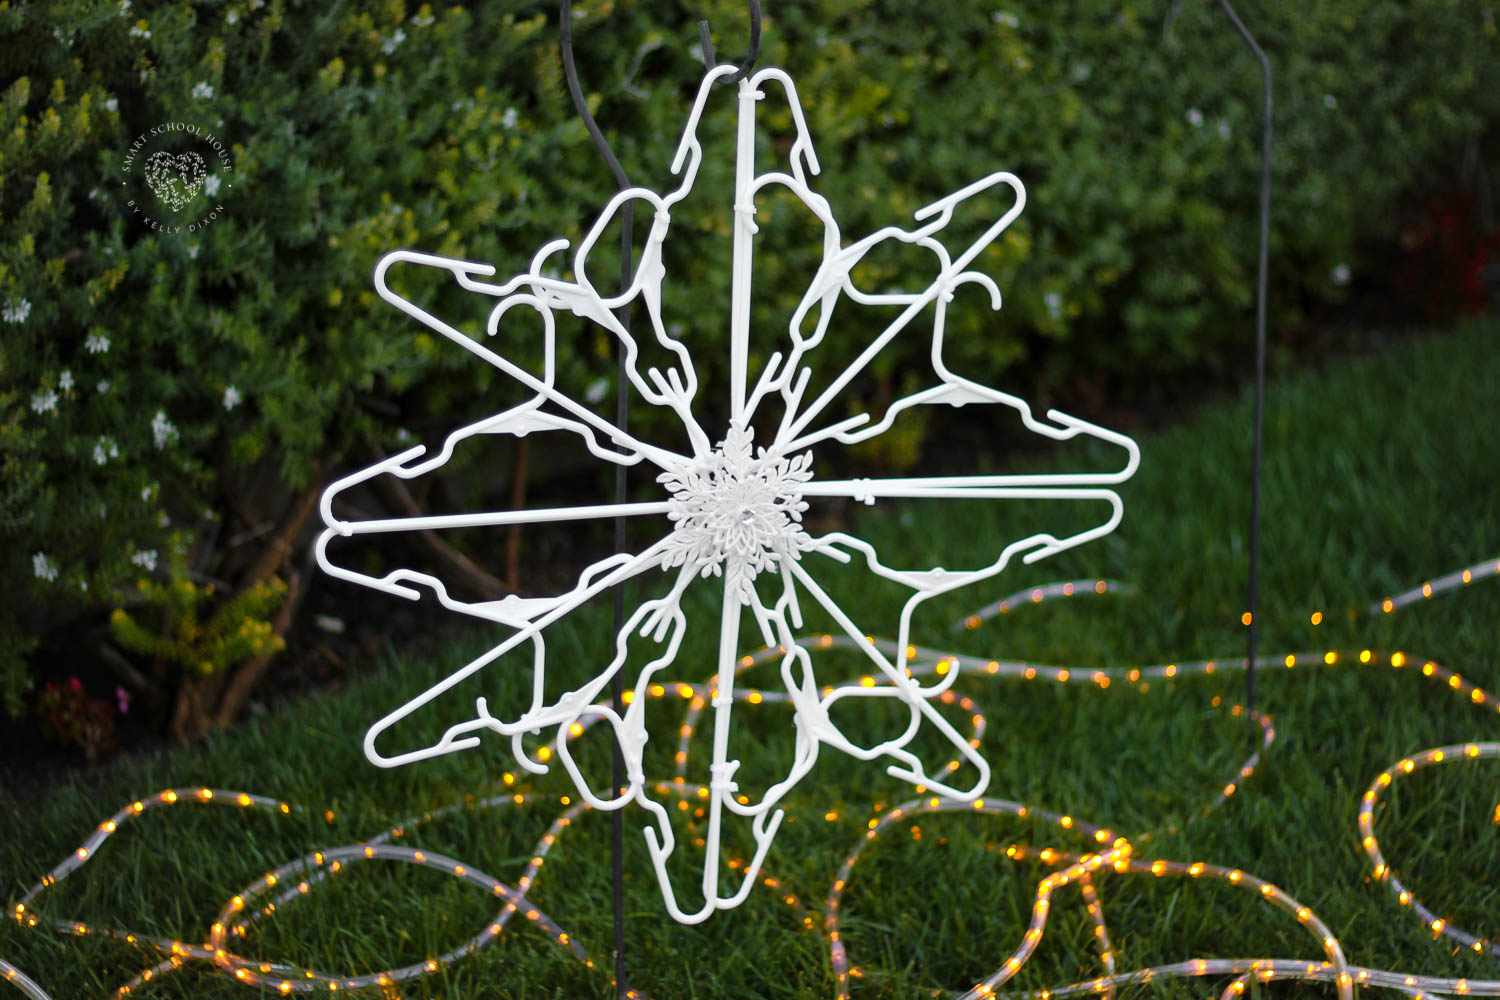 A snowflake made of hangers